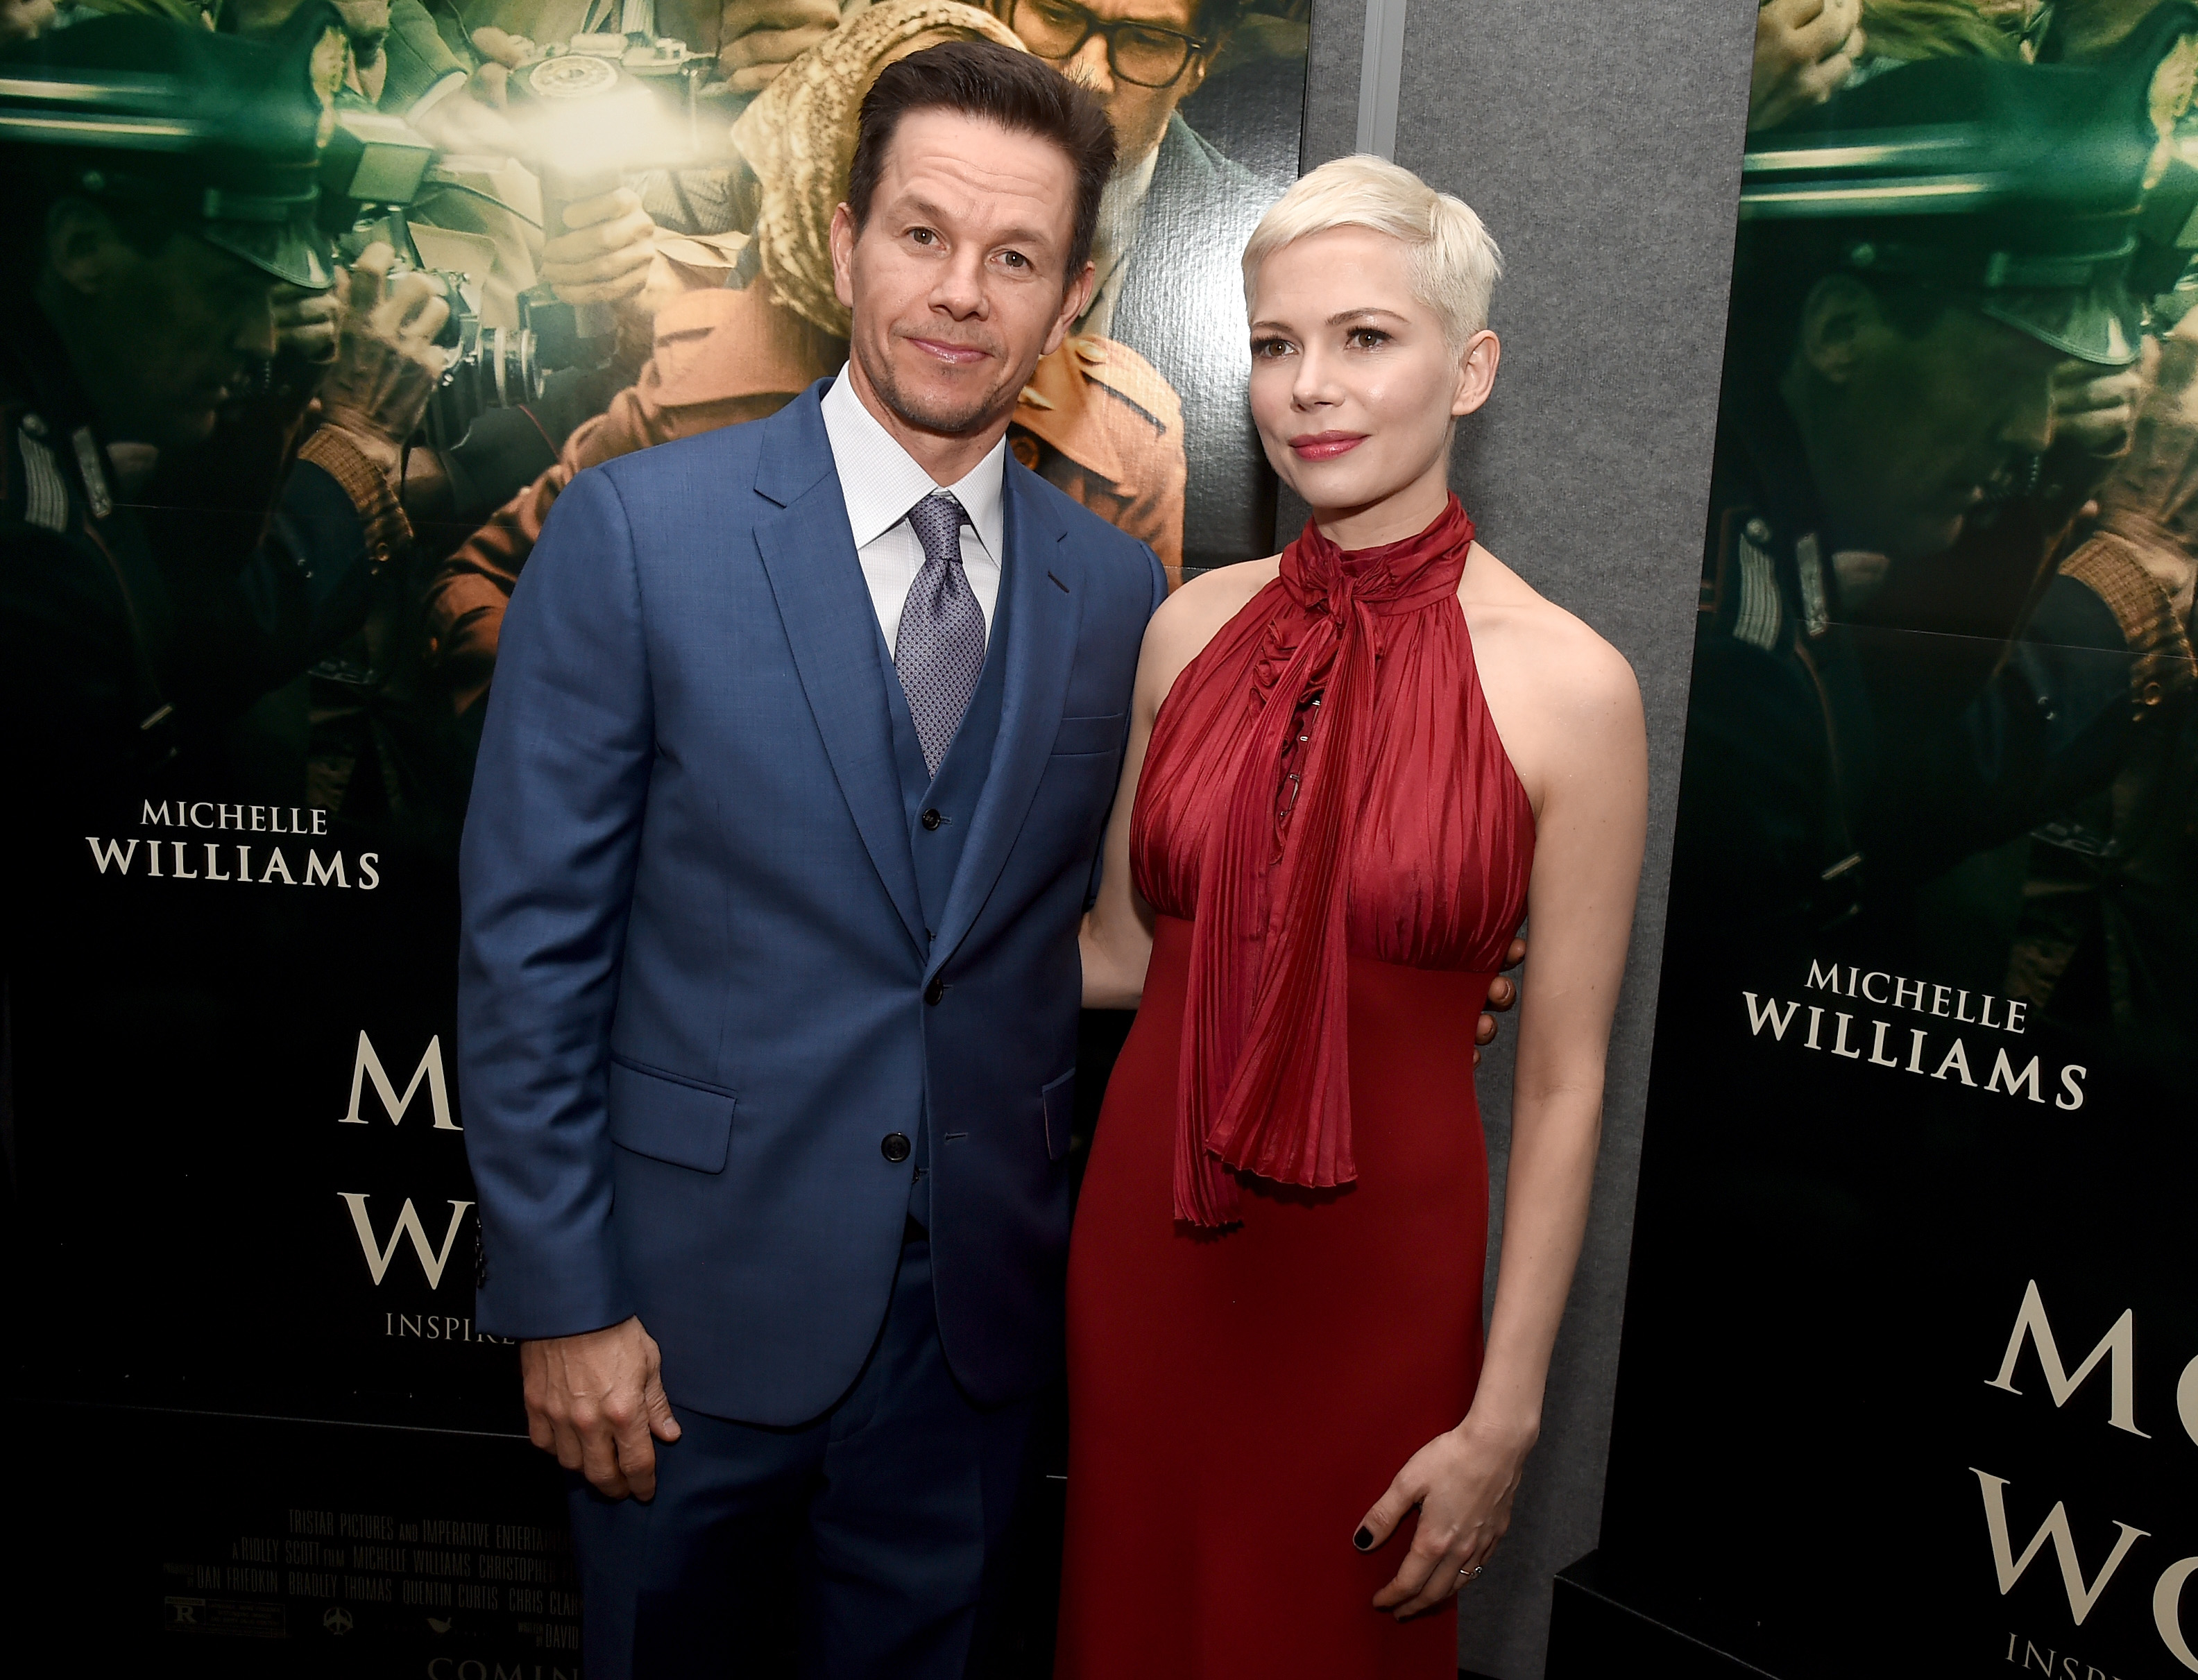 michelle williams paid less than money co star mark wahlberg rh rollingstone com